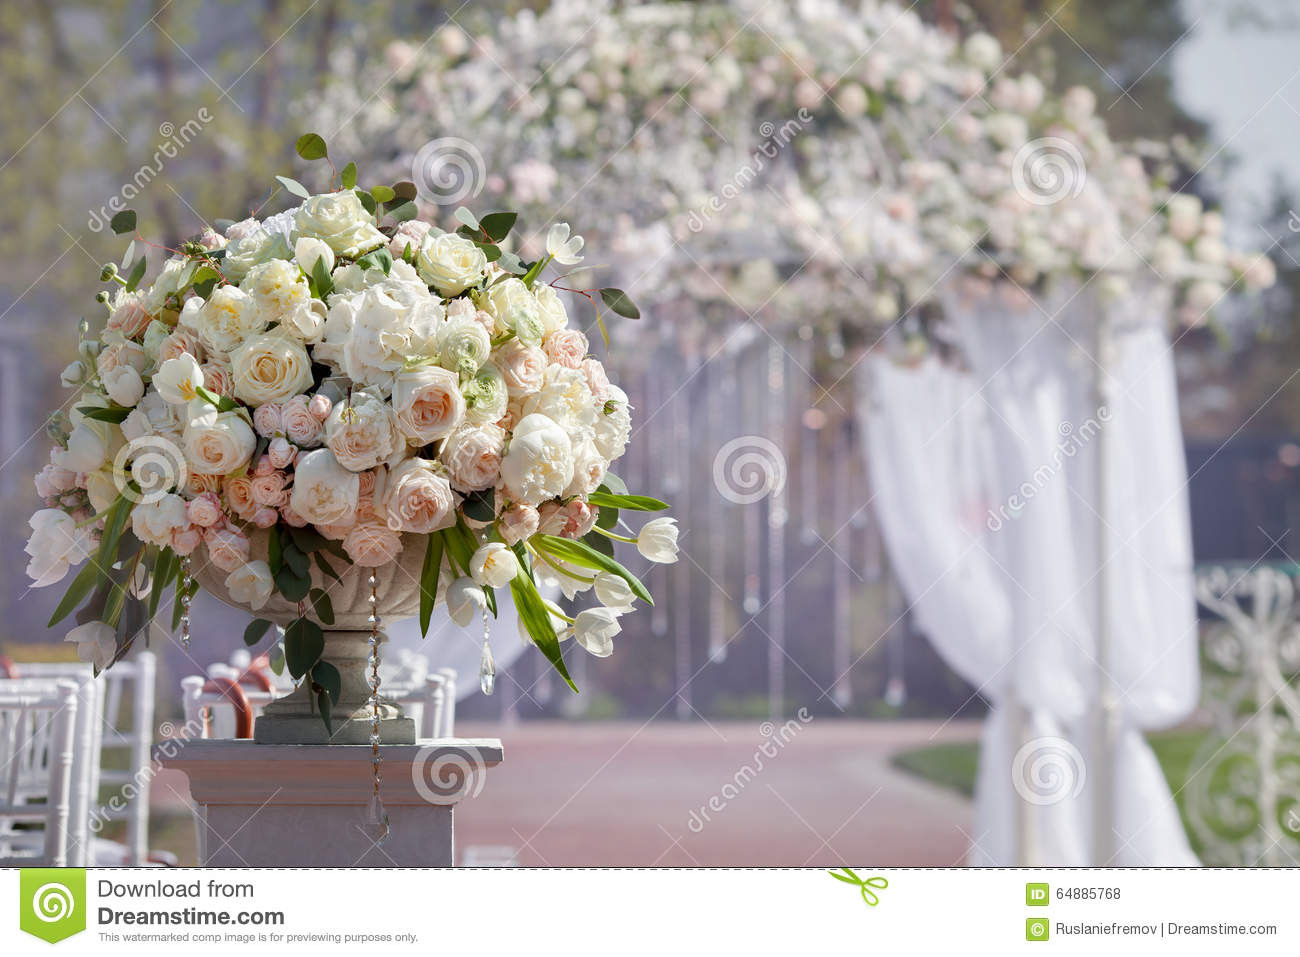 29 Elegant How to Hold Artificial Flowers In A Vase 2021 free download how to hold artificial flowers in a vase of beautiful bouquet of roses in a vase on a background of a wedding regarding beautiful bouquet of roses in a vase on a background of a wedding arch